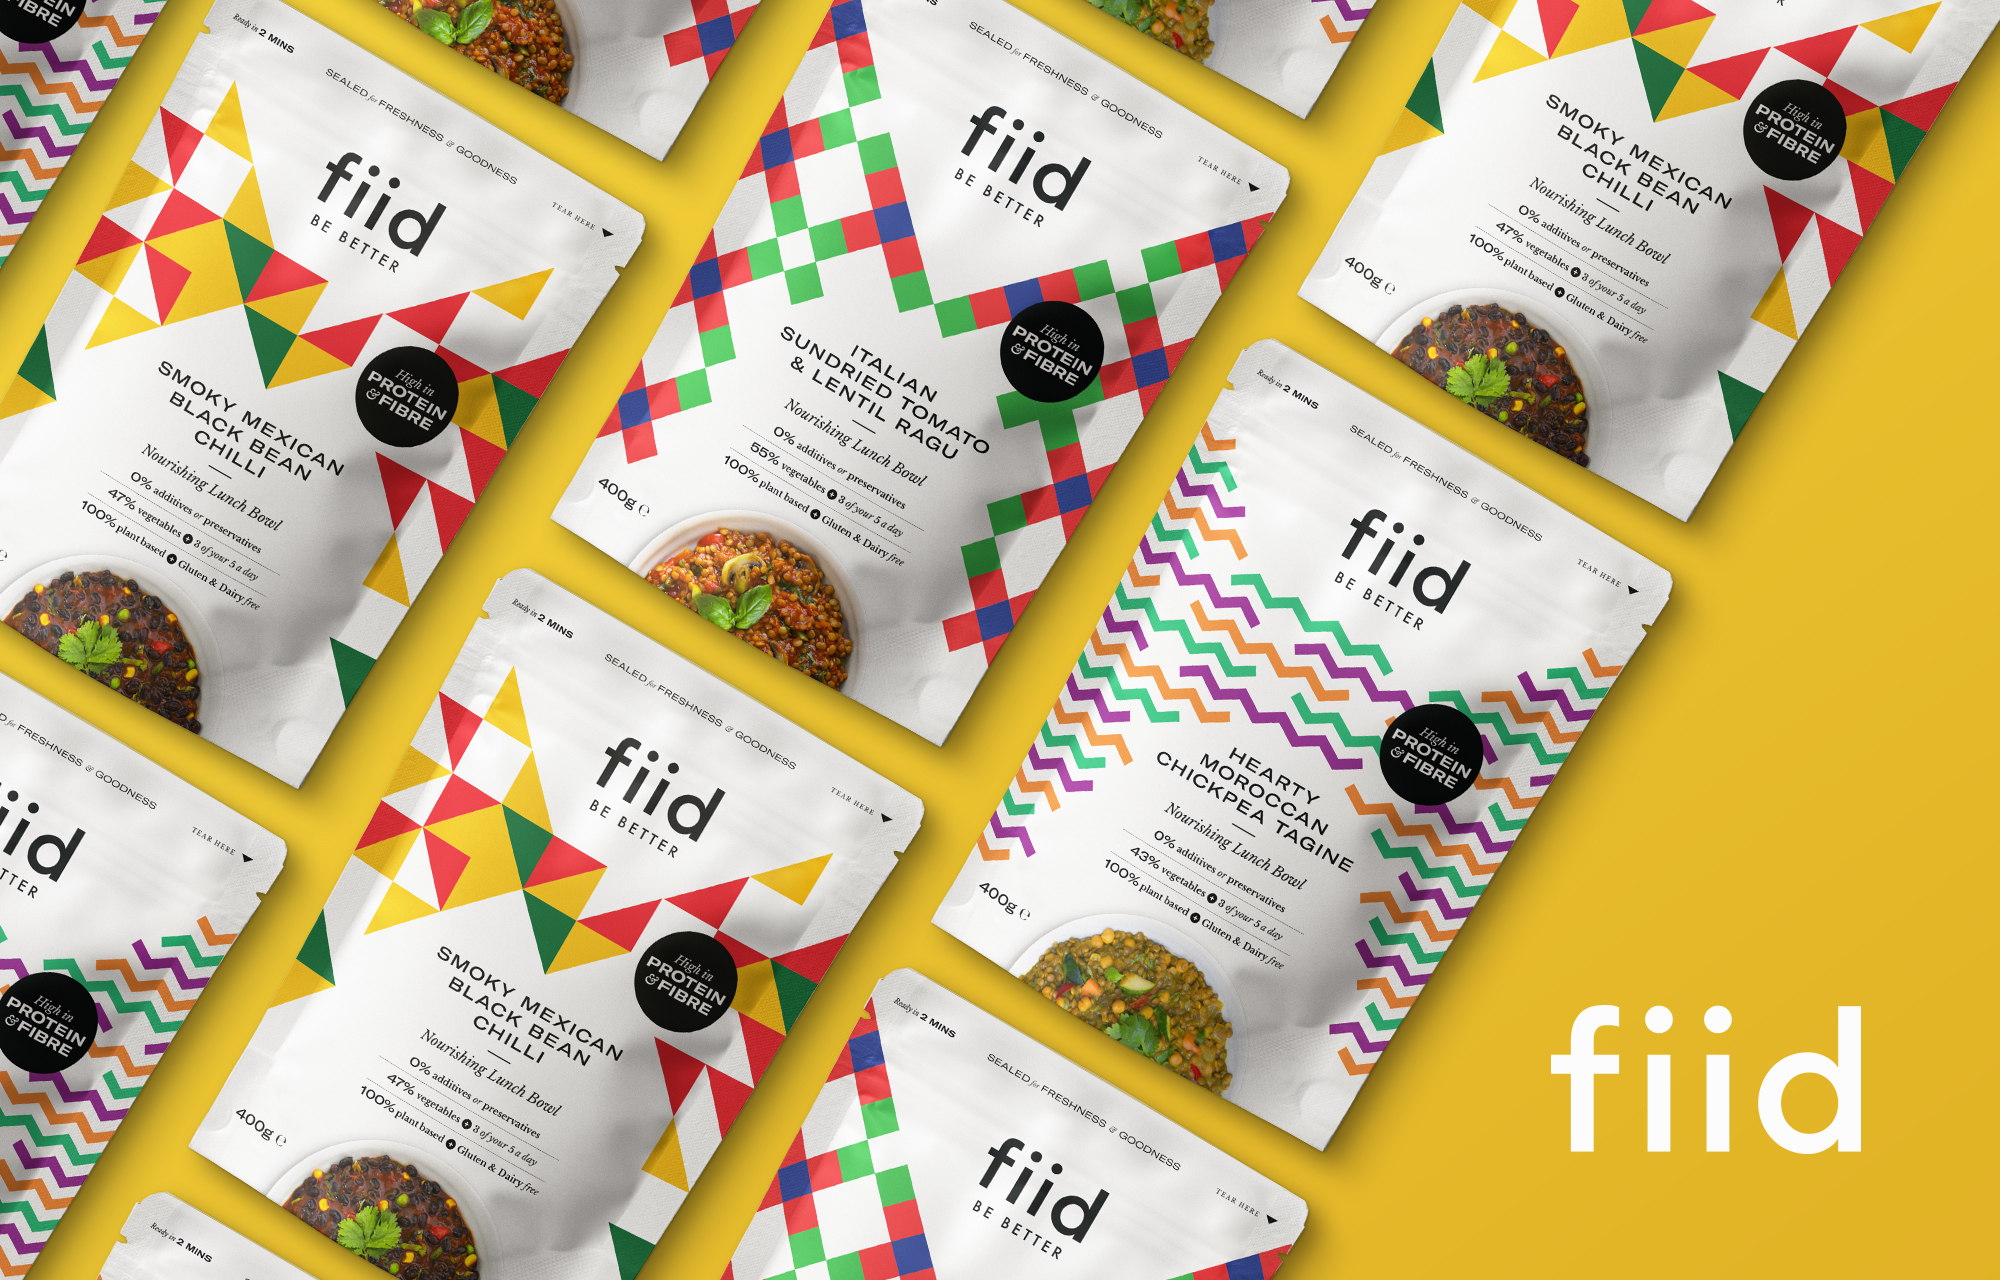 Cover image: fiid — Vegan Lunch Bowls